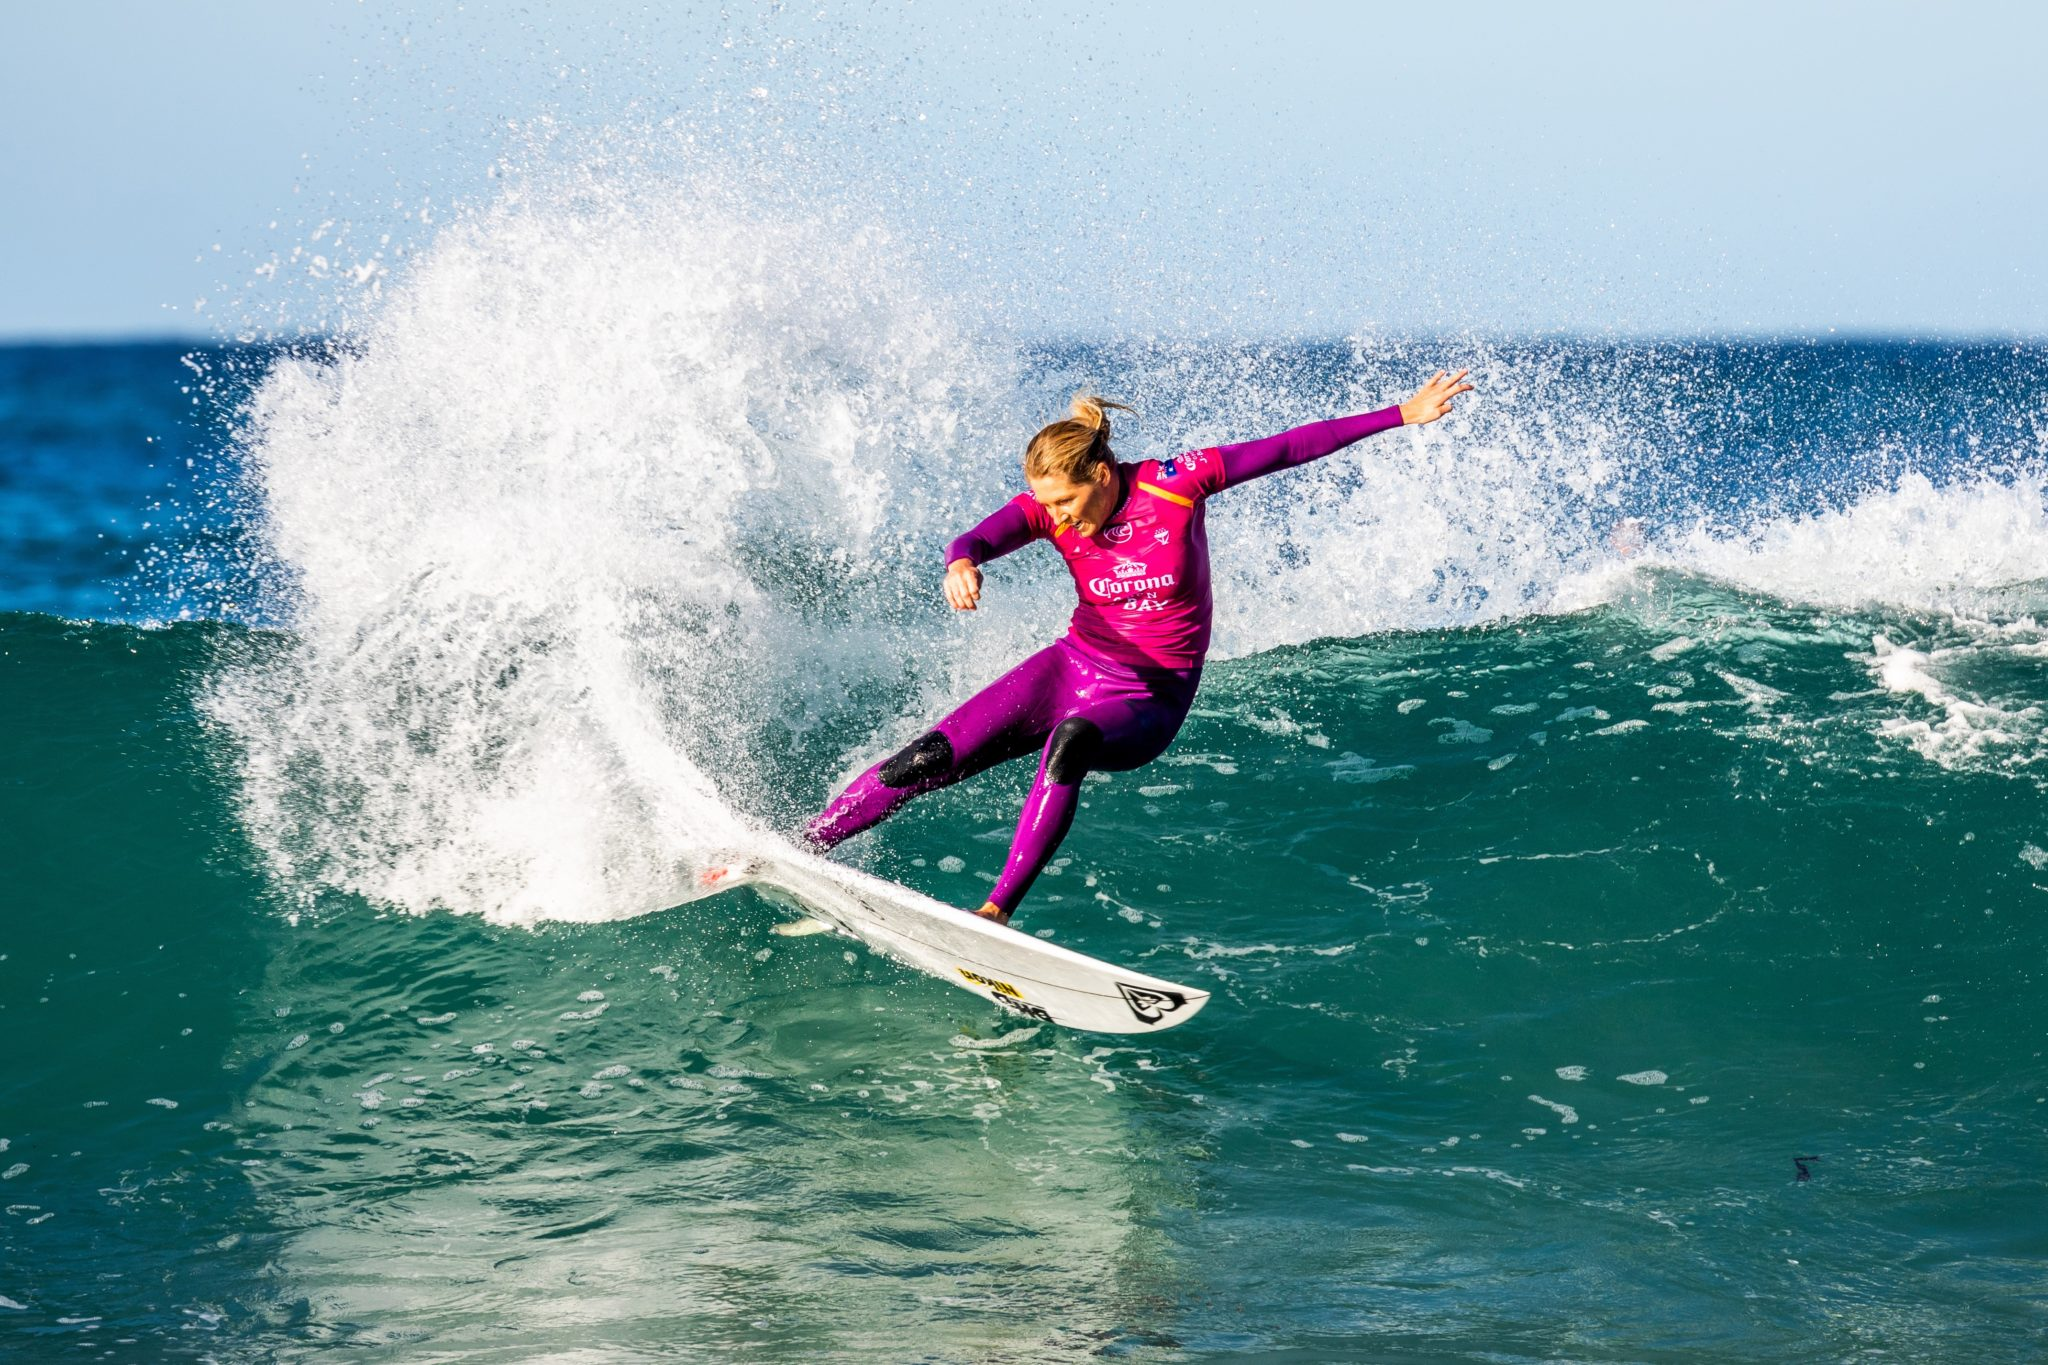 Stephanie Gilmore (AUS) (Pierre Tostee / WSL via Getty Images)